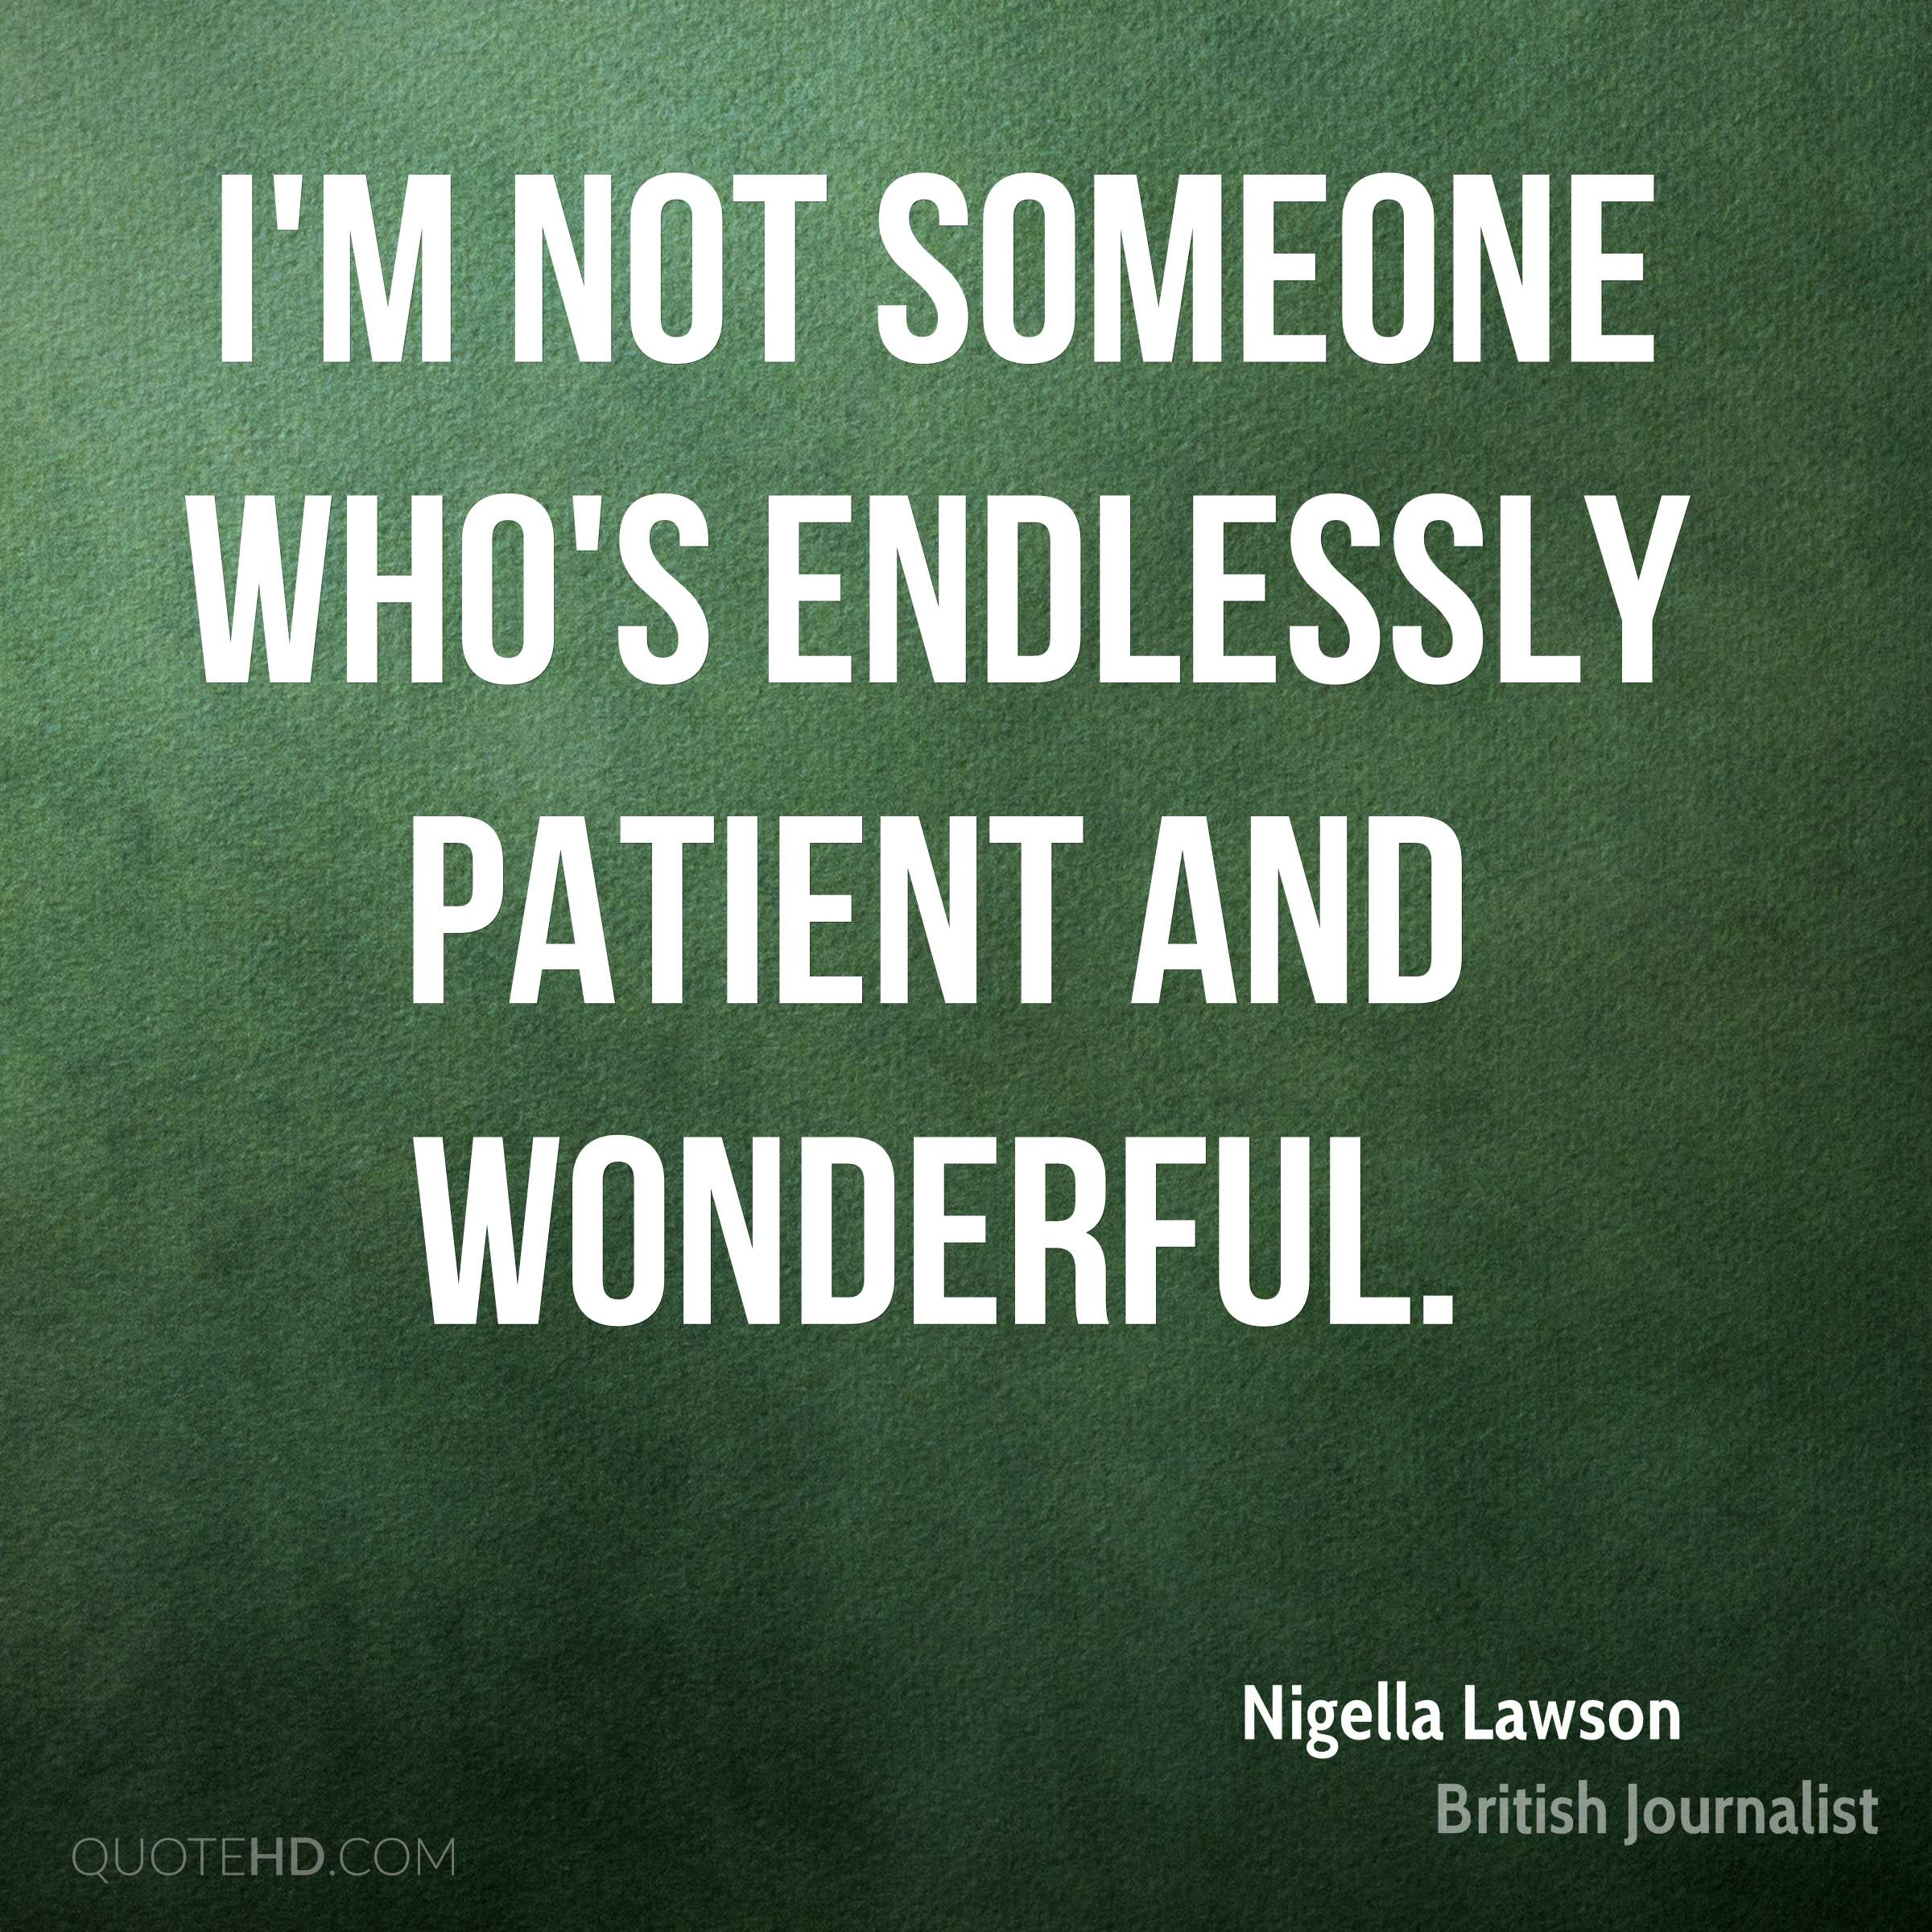 I'm not someone who's endlessly patient and wonderful.